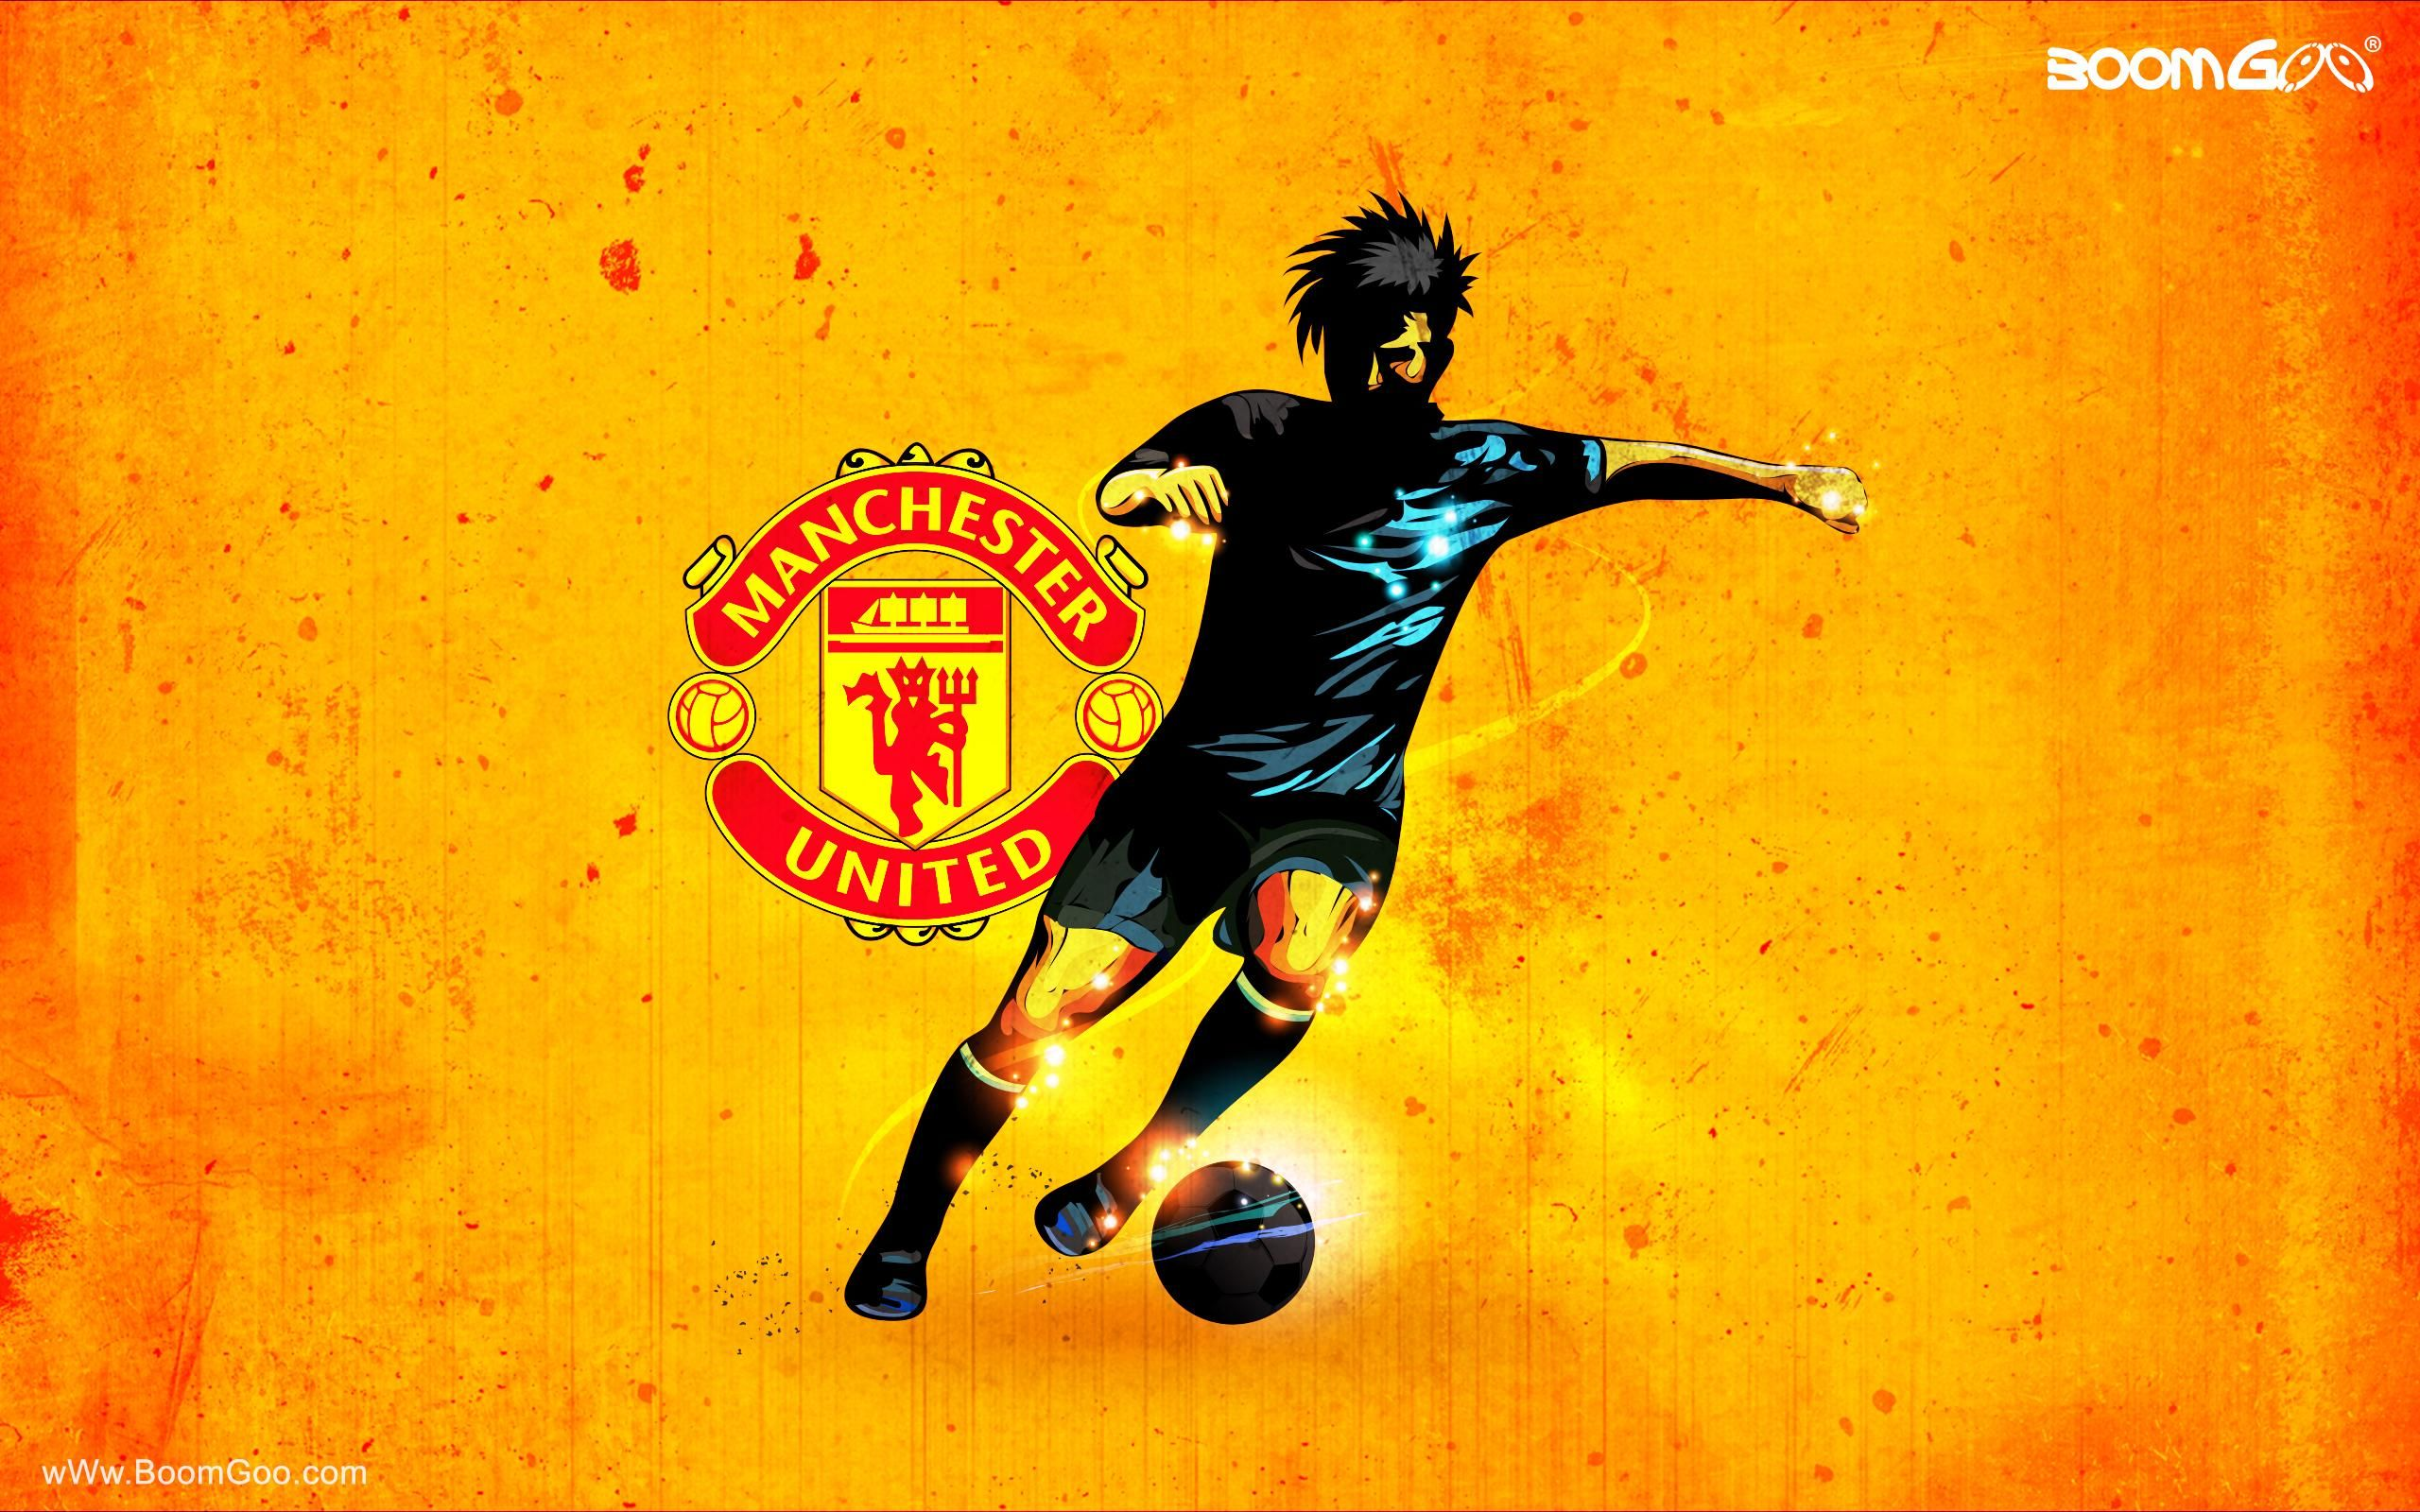 Most Beautiful Manchester United Wallpapers Plays We have got few cool collection of desktop and mobile background wallpapers. Get them for free on our portal . . . #footballer #trollfootball #soccermemes #footballgame #footballplayer #goalkeeper #lovefootball #ilovefootball #footballislife #thebeautifulgame #tekkers #freekick #manchesterunited #salah #lingard #liverpool #beast #greatplays #footballplays #footballcatches #bestplayer #wallpaper #laliga #barca #dybala #coutinho #zlatan #hazard #manutd #arsena